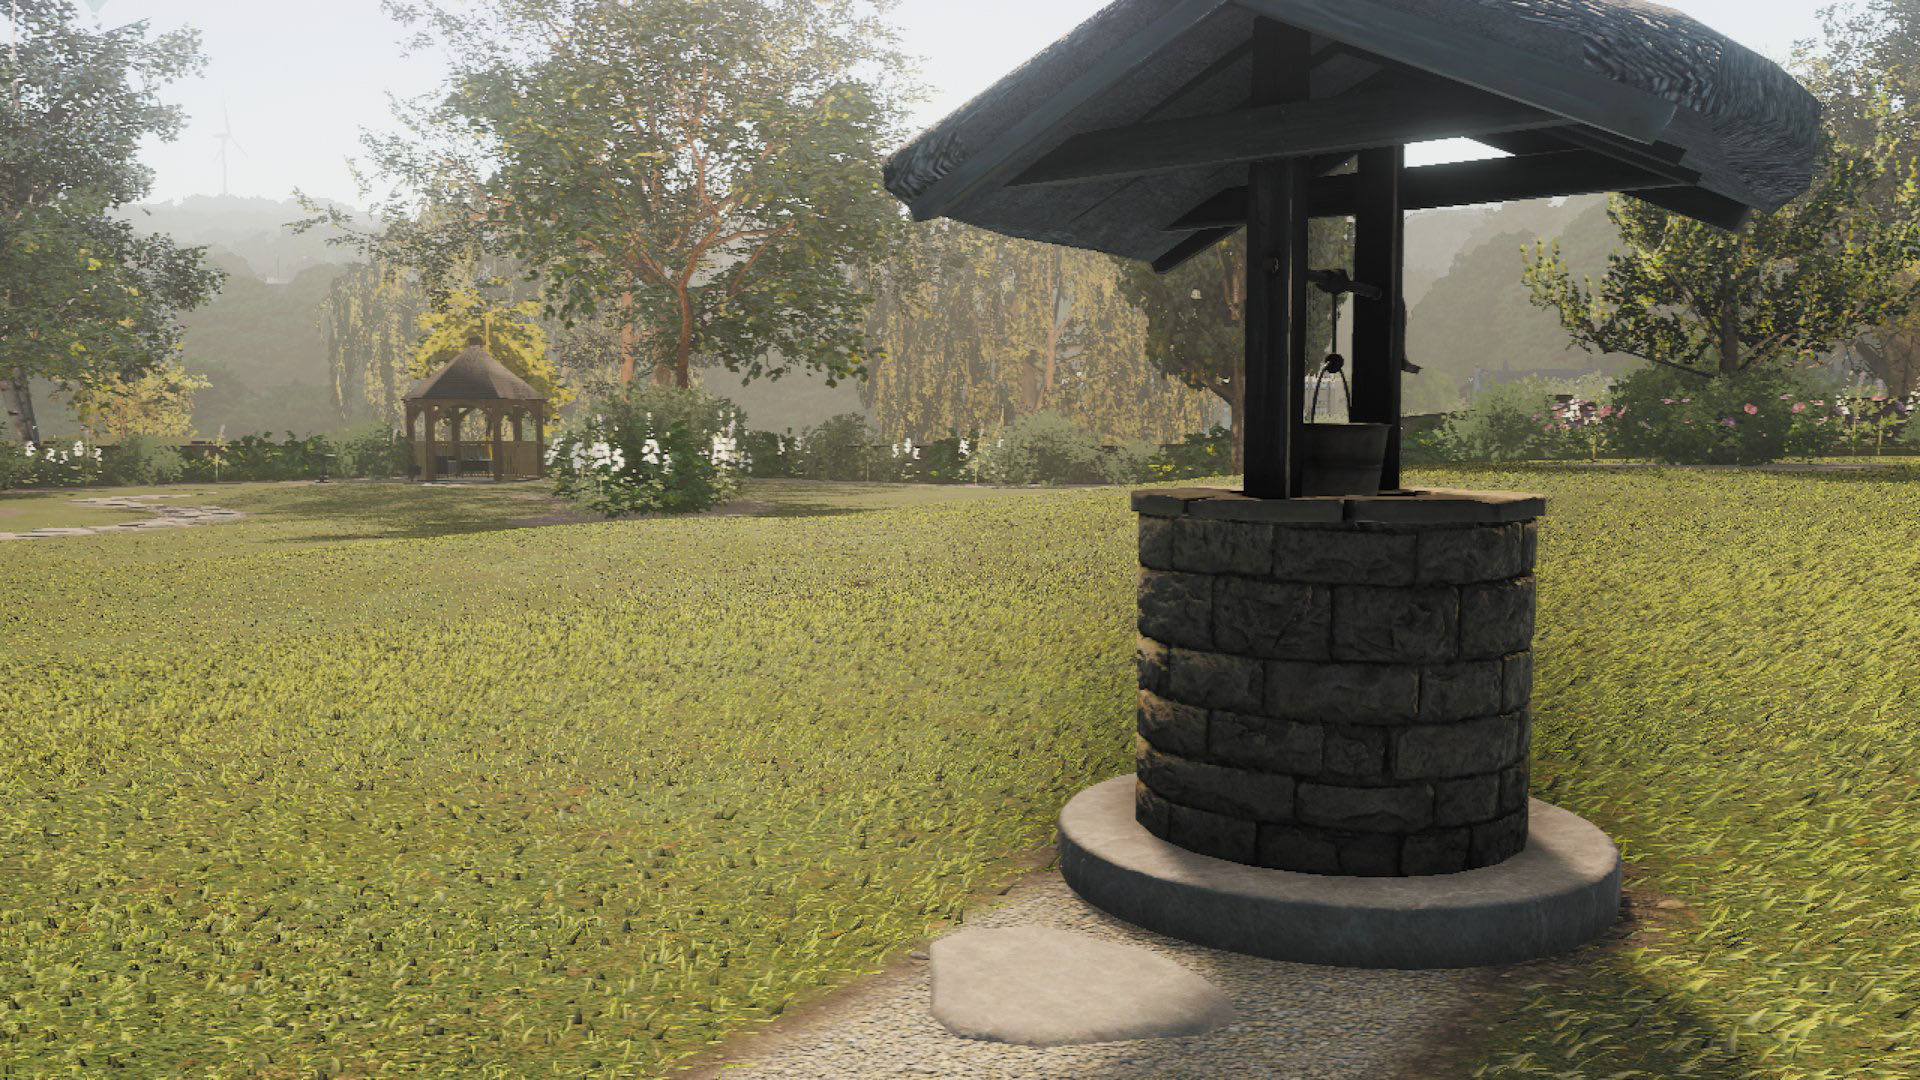 A screenshot from Lawn Mowing Simulator, showing a well at the centre of a large lawn, with a small gazebo in the distance.